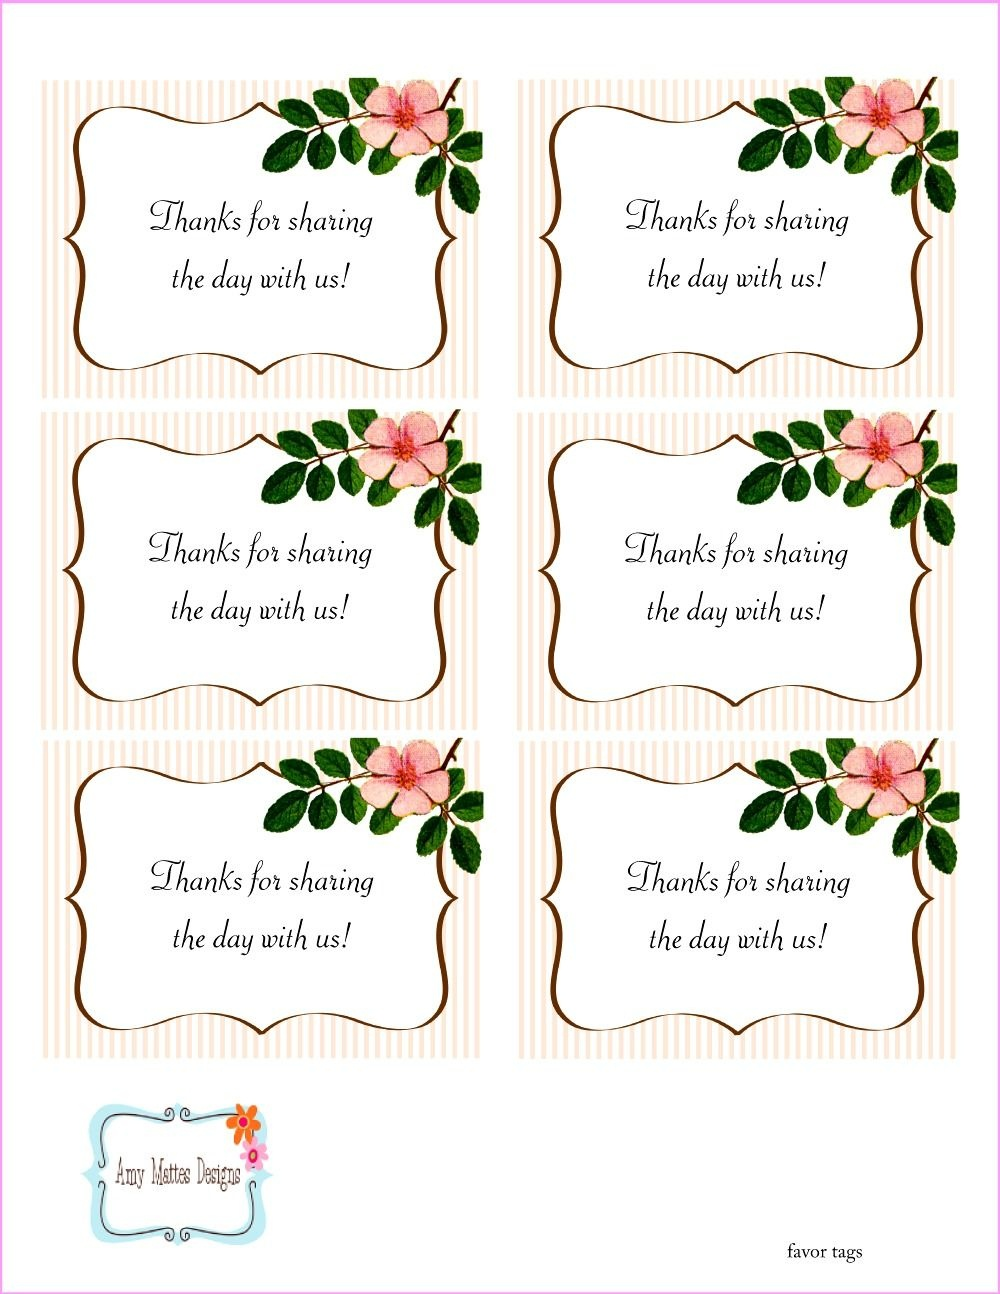 The Beautiful Wedding Favor Tags As Our Identity: Free Printable - Free Printable Wedding Favor Tags